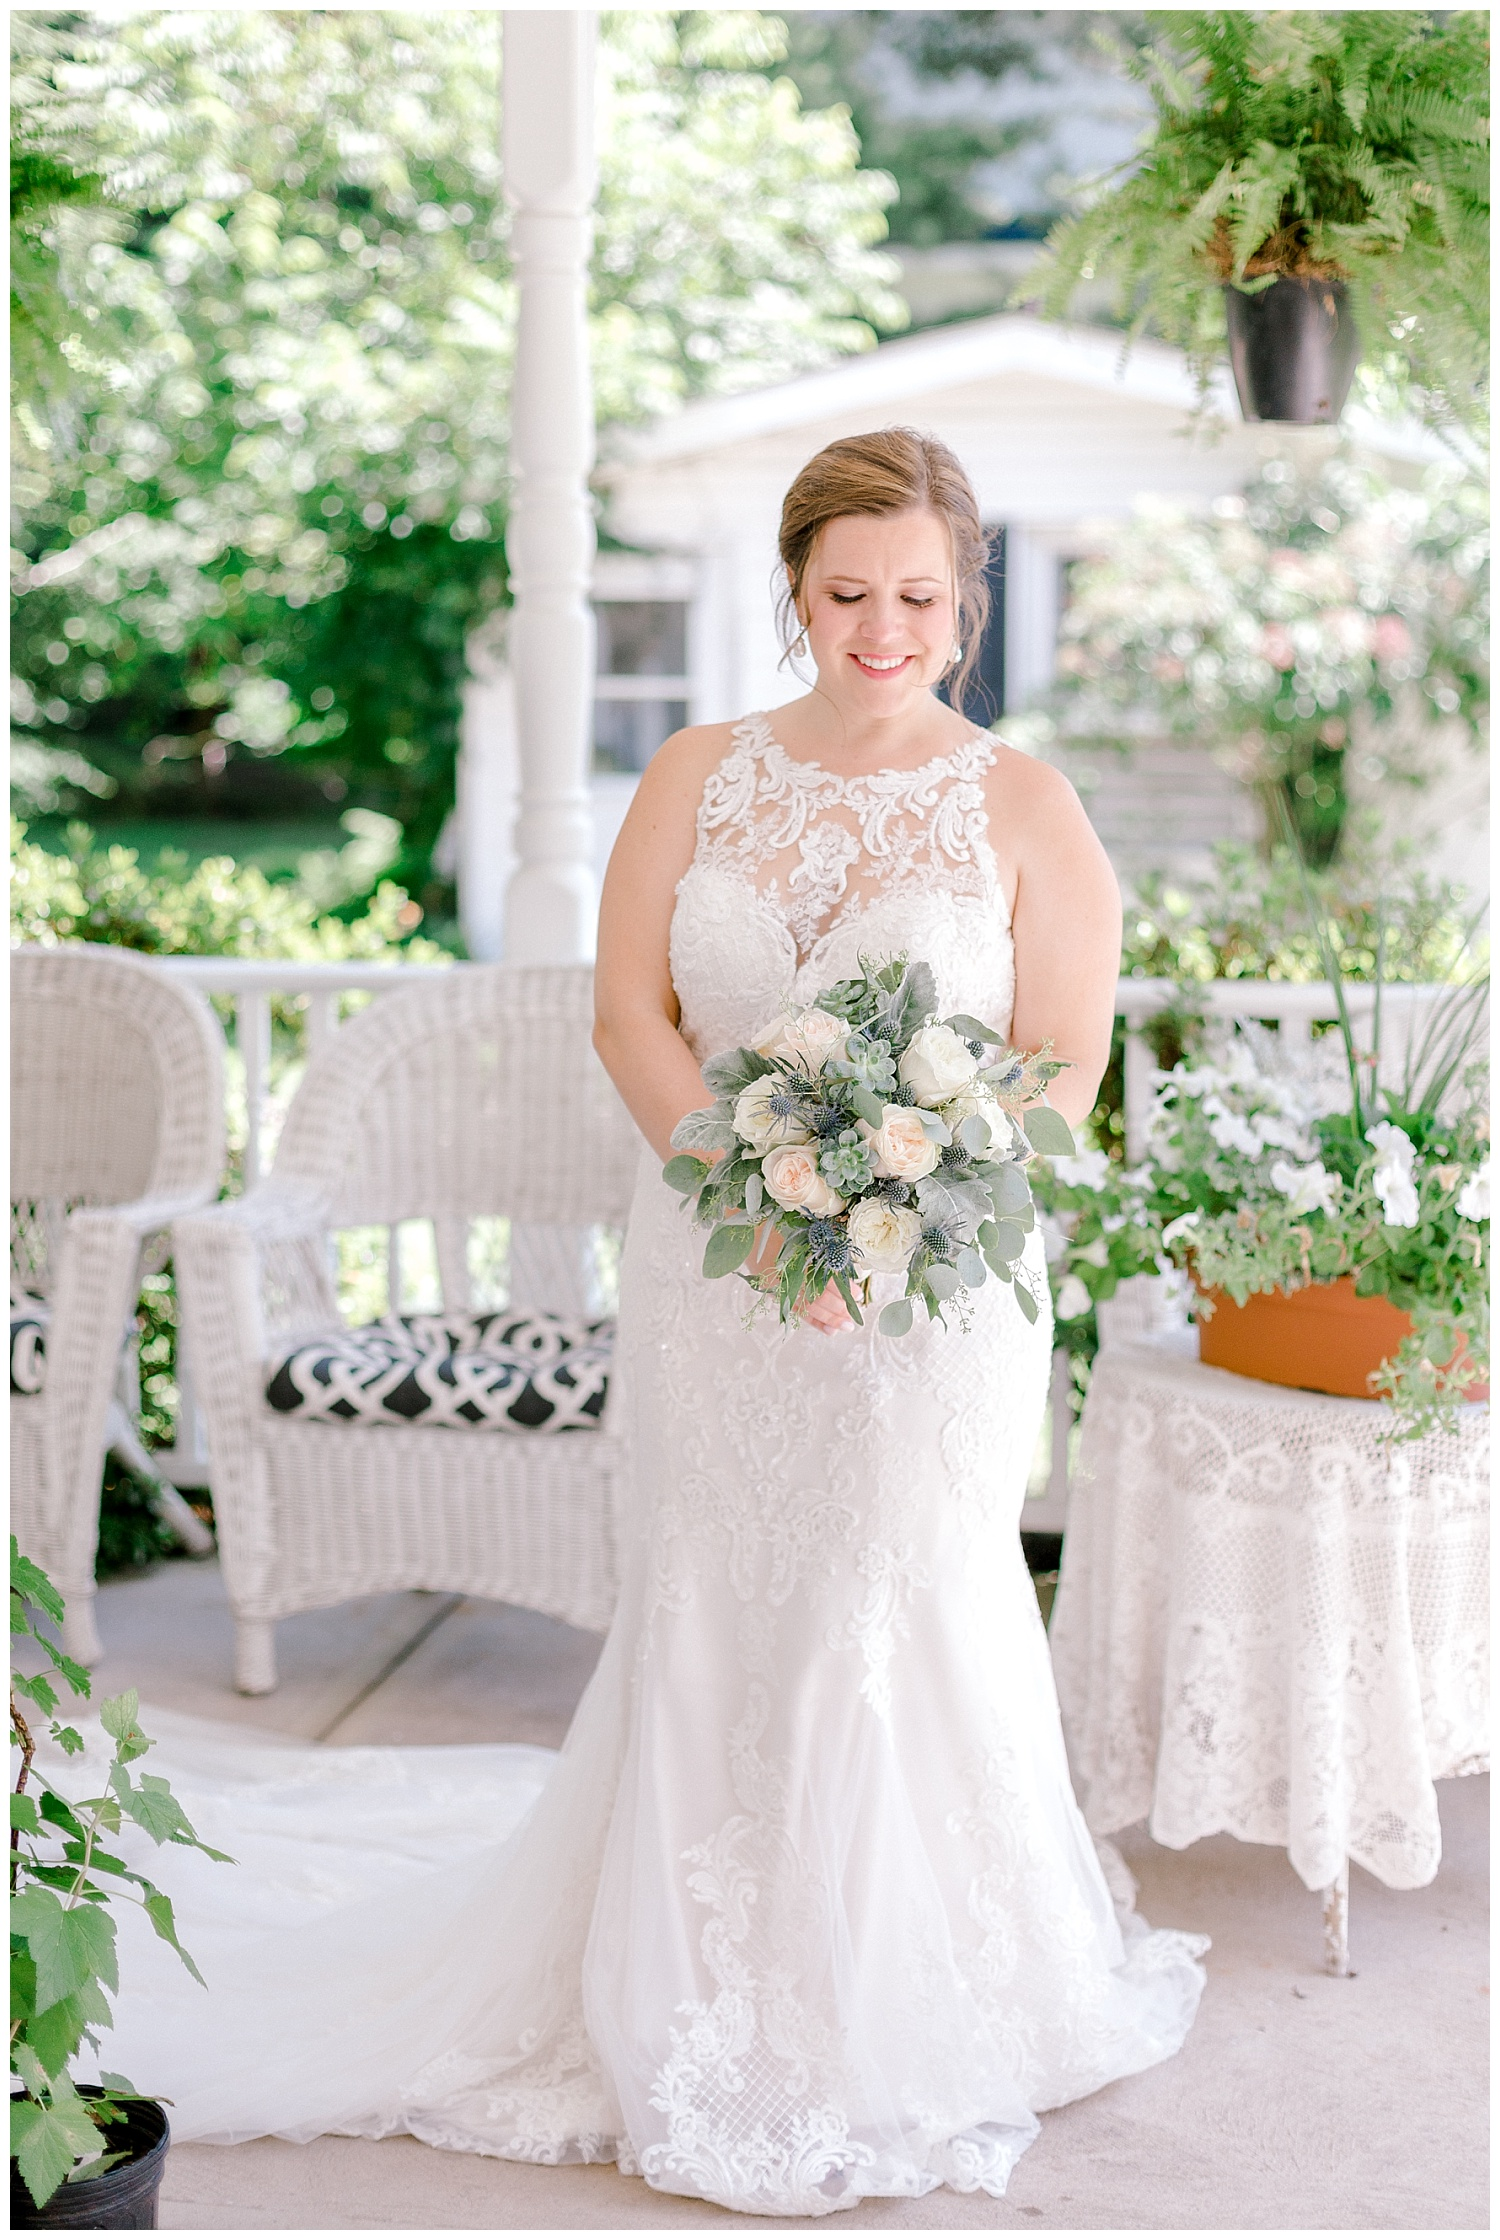 Navy and Blush pink inspired summertime whitewoods wedding in Northeastern Pennsylvania NEPA wapwallopen wedding venue by  PA based wedding and lifestyle photographer Lytle photography_0015.jpg